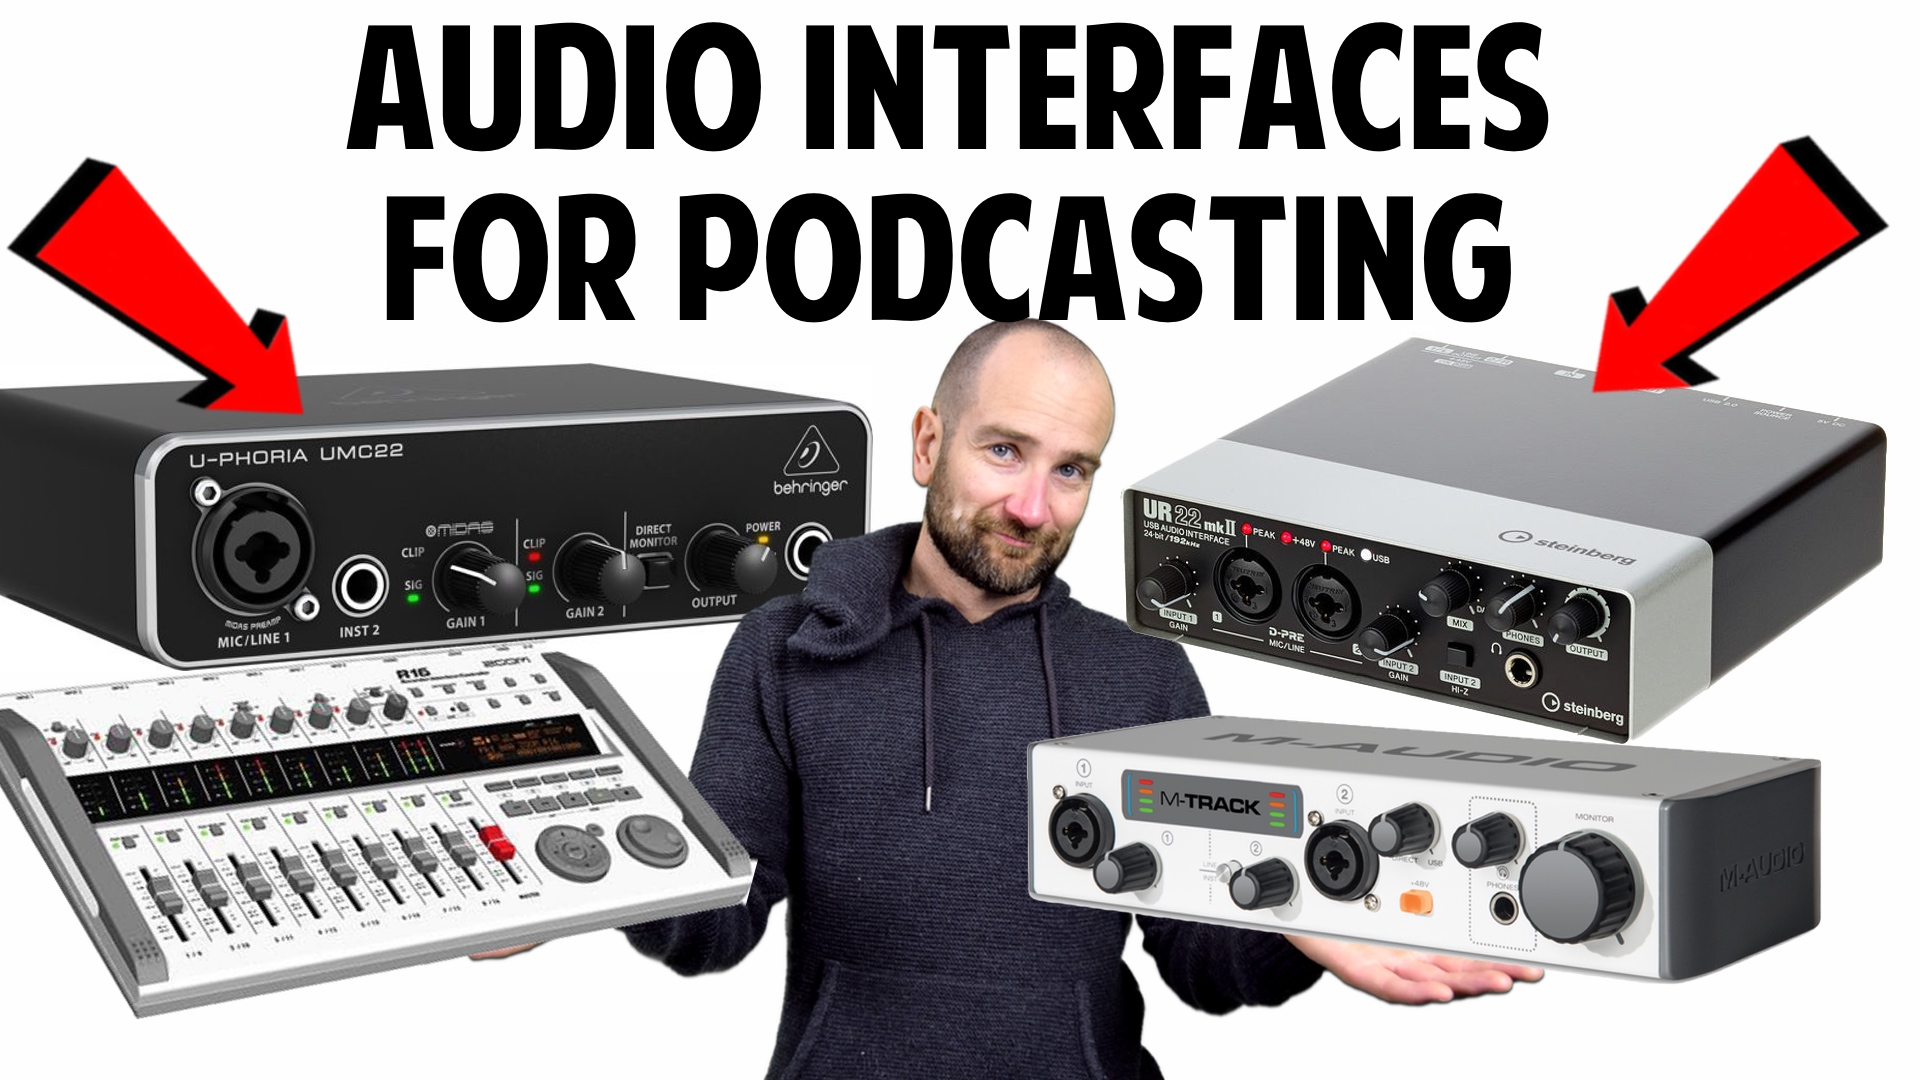 Audio Interfaces for Podcasting